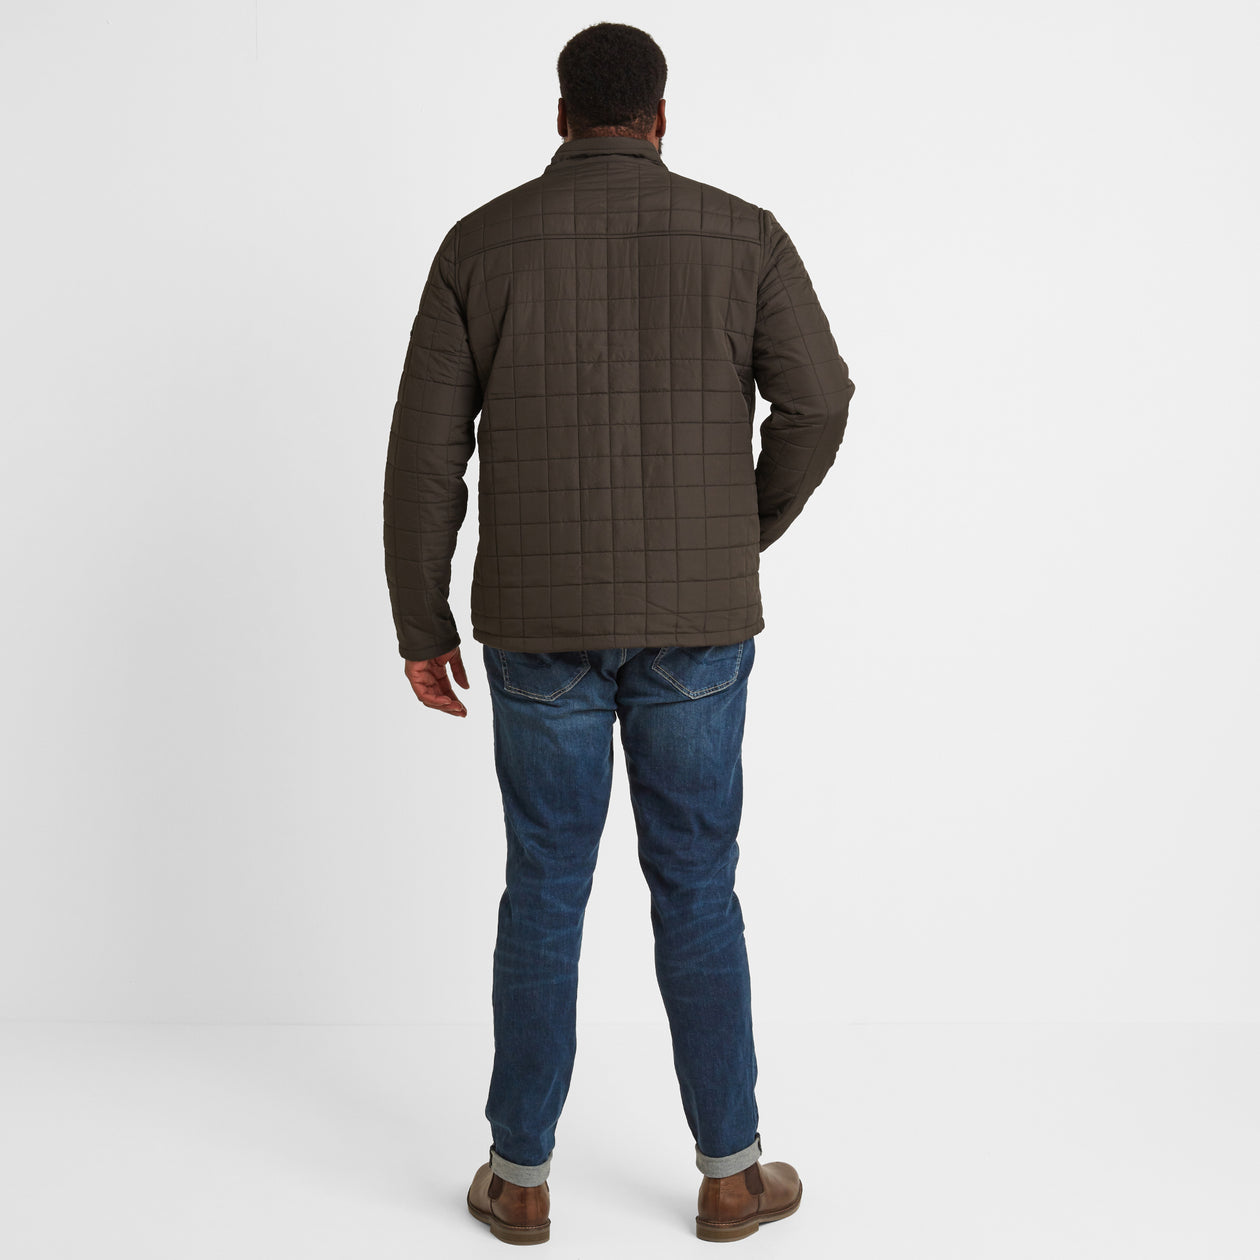 Harman Mens Jacket - Dark Khaki image 8